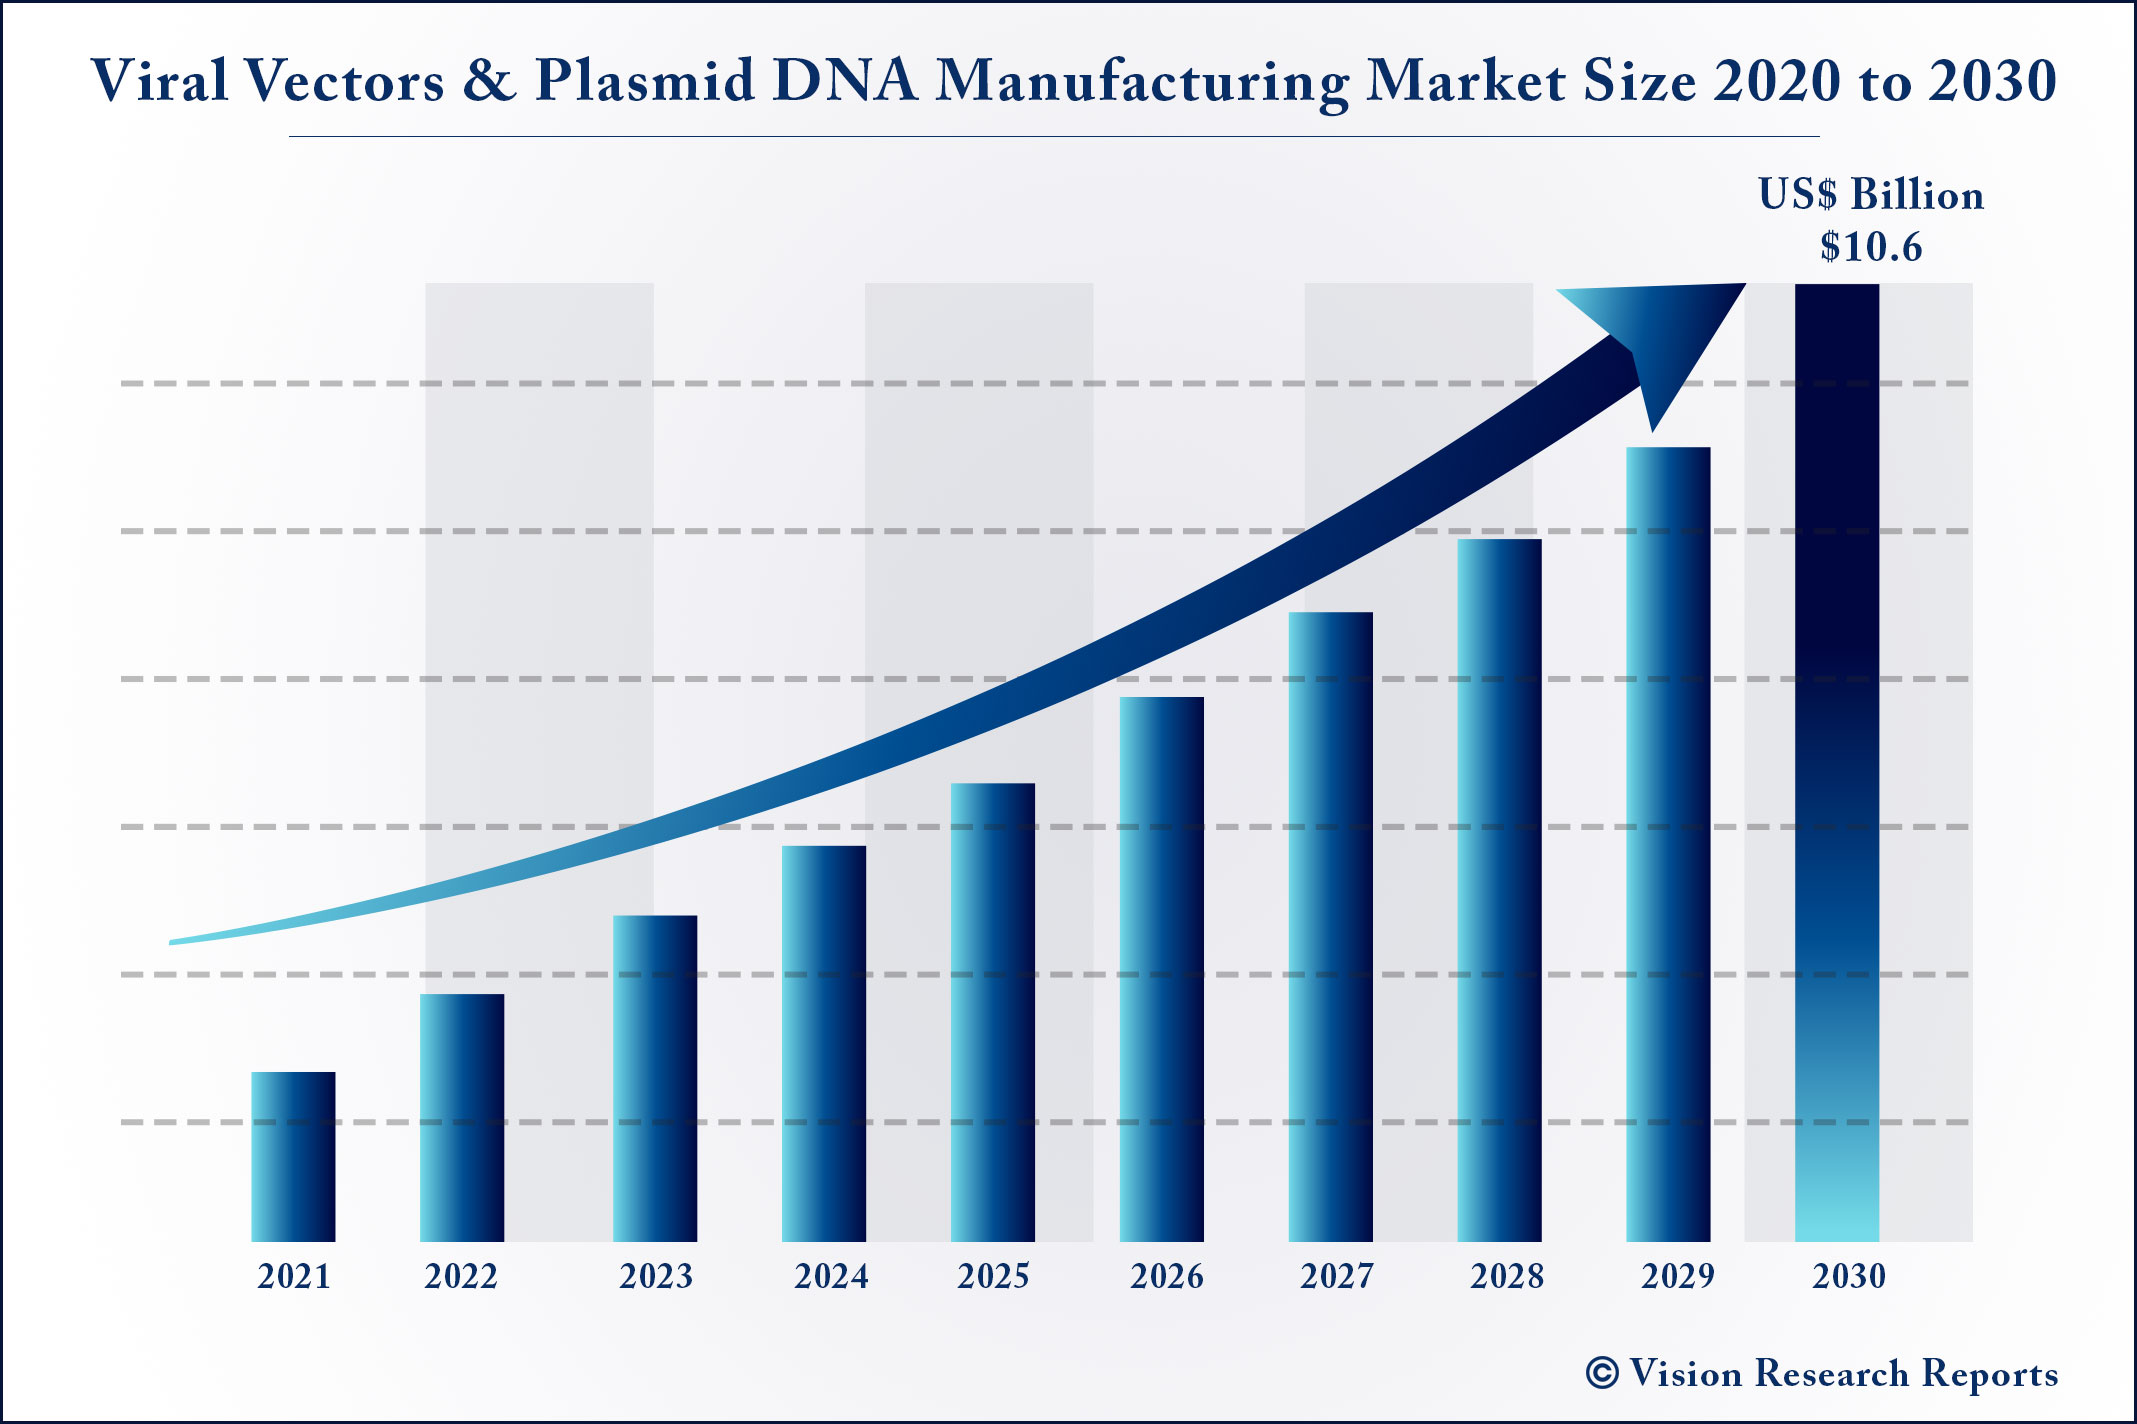 Viral Vectors & Plasmid DNA Manufacturing Market Size 2020 to 2030